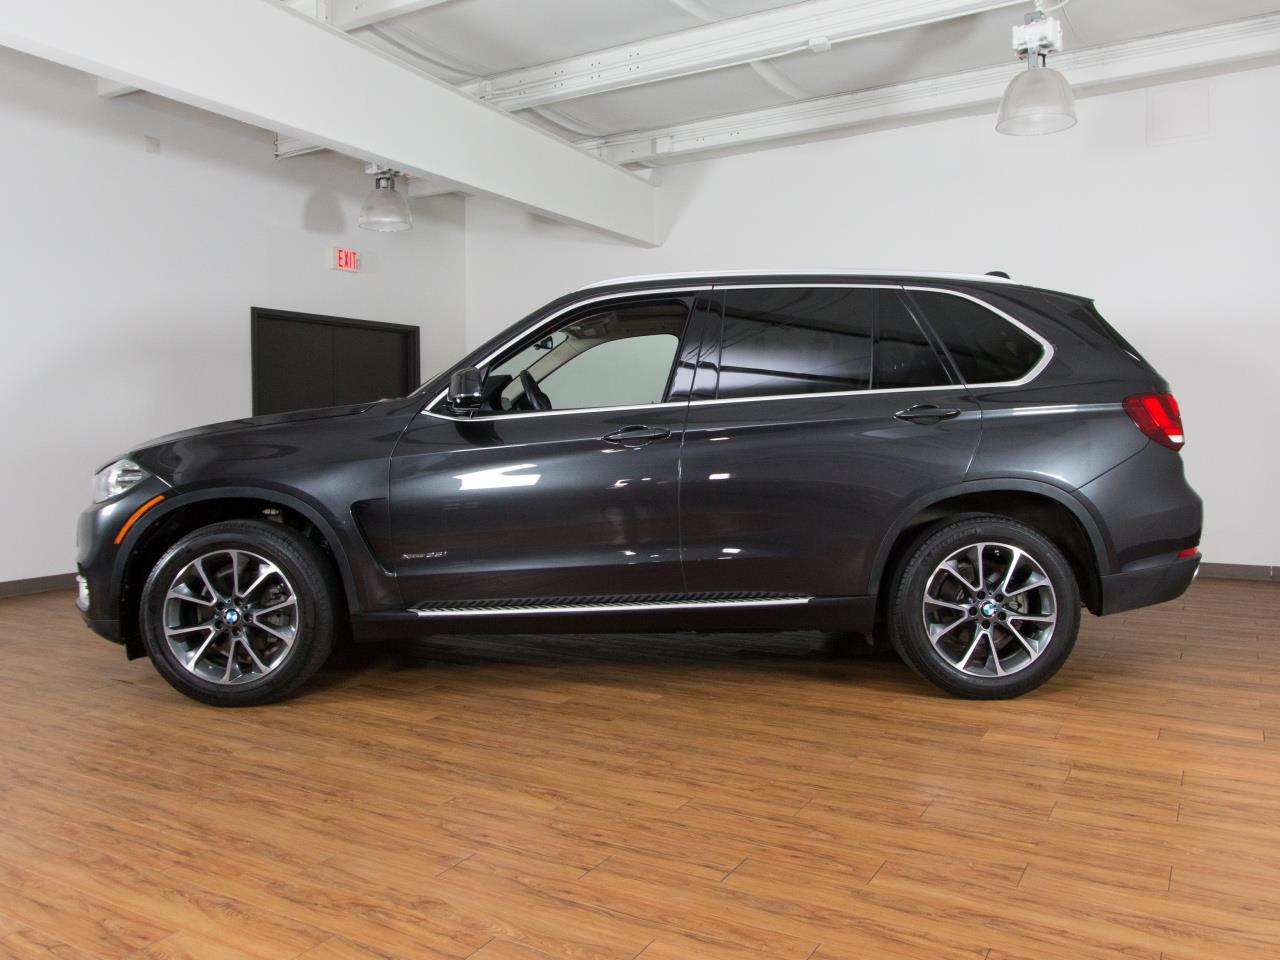 2015 bmw x5 xdrive35i. Black Bedroom Furniture Sets. Home Design Ideas